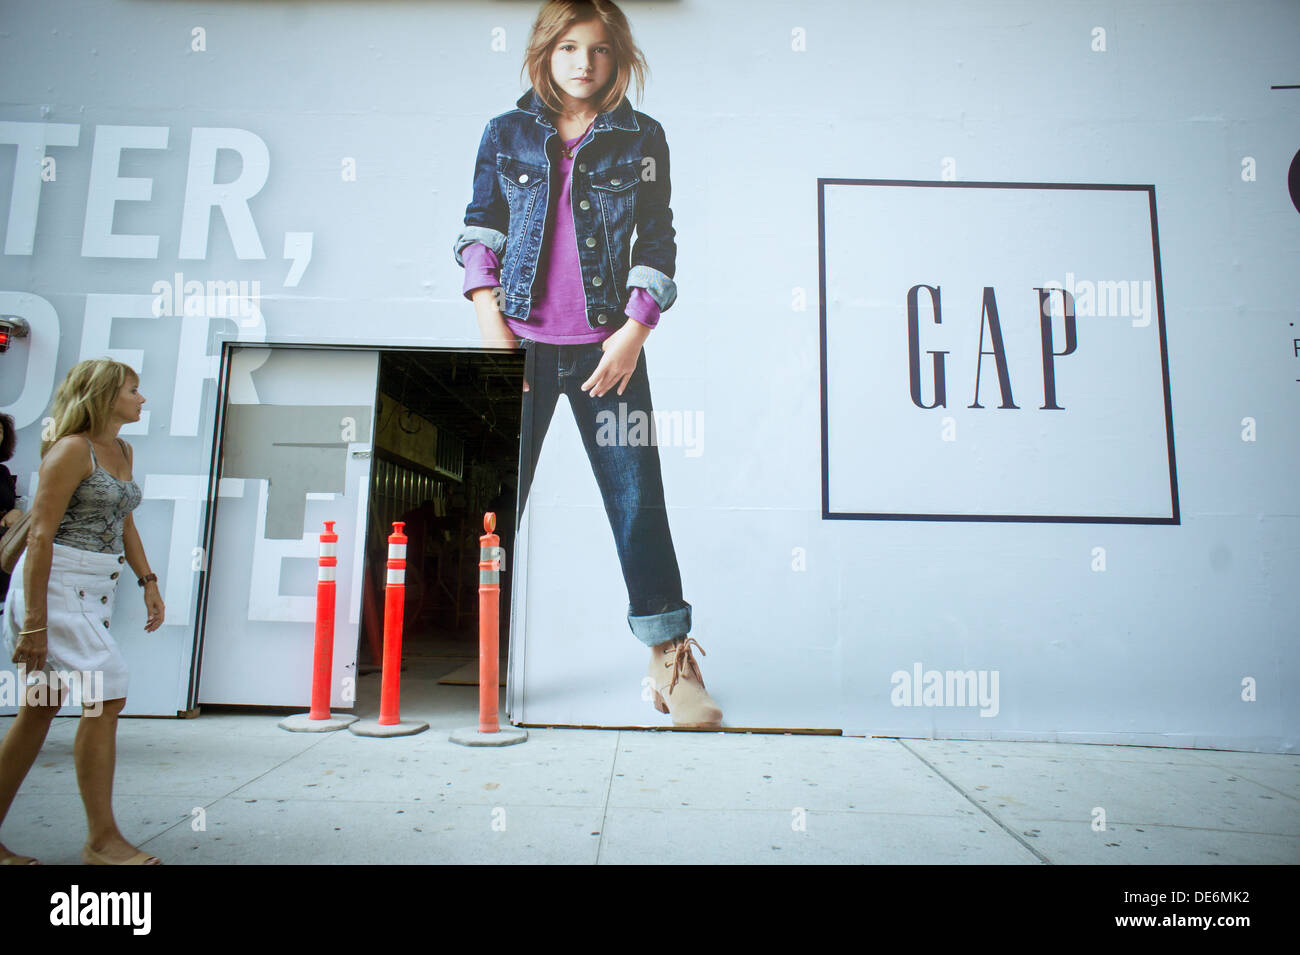 A construction shed covers the front of a Gap store as it gets spruced up, in the Flatiron neighborhood of New York - Stock Image